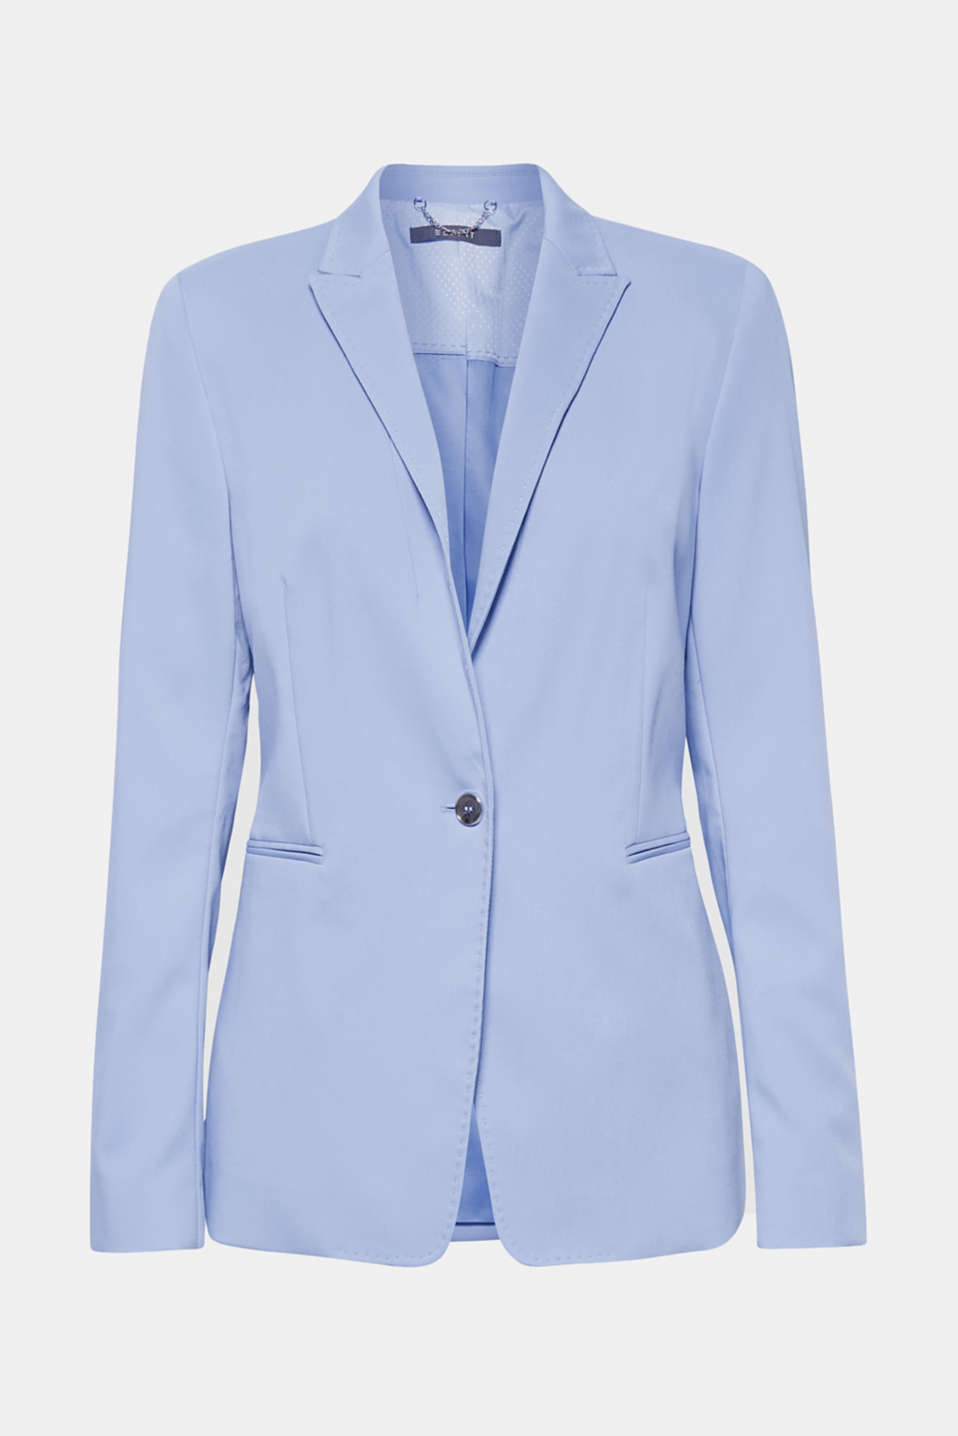 SPRING TWILL Mix + Match stretch blazer, LIGHT BLUE, detail image number 7